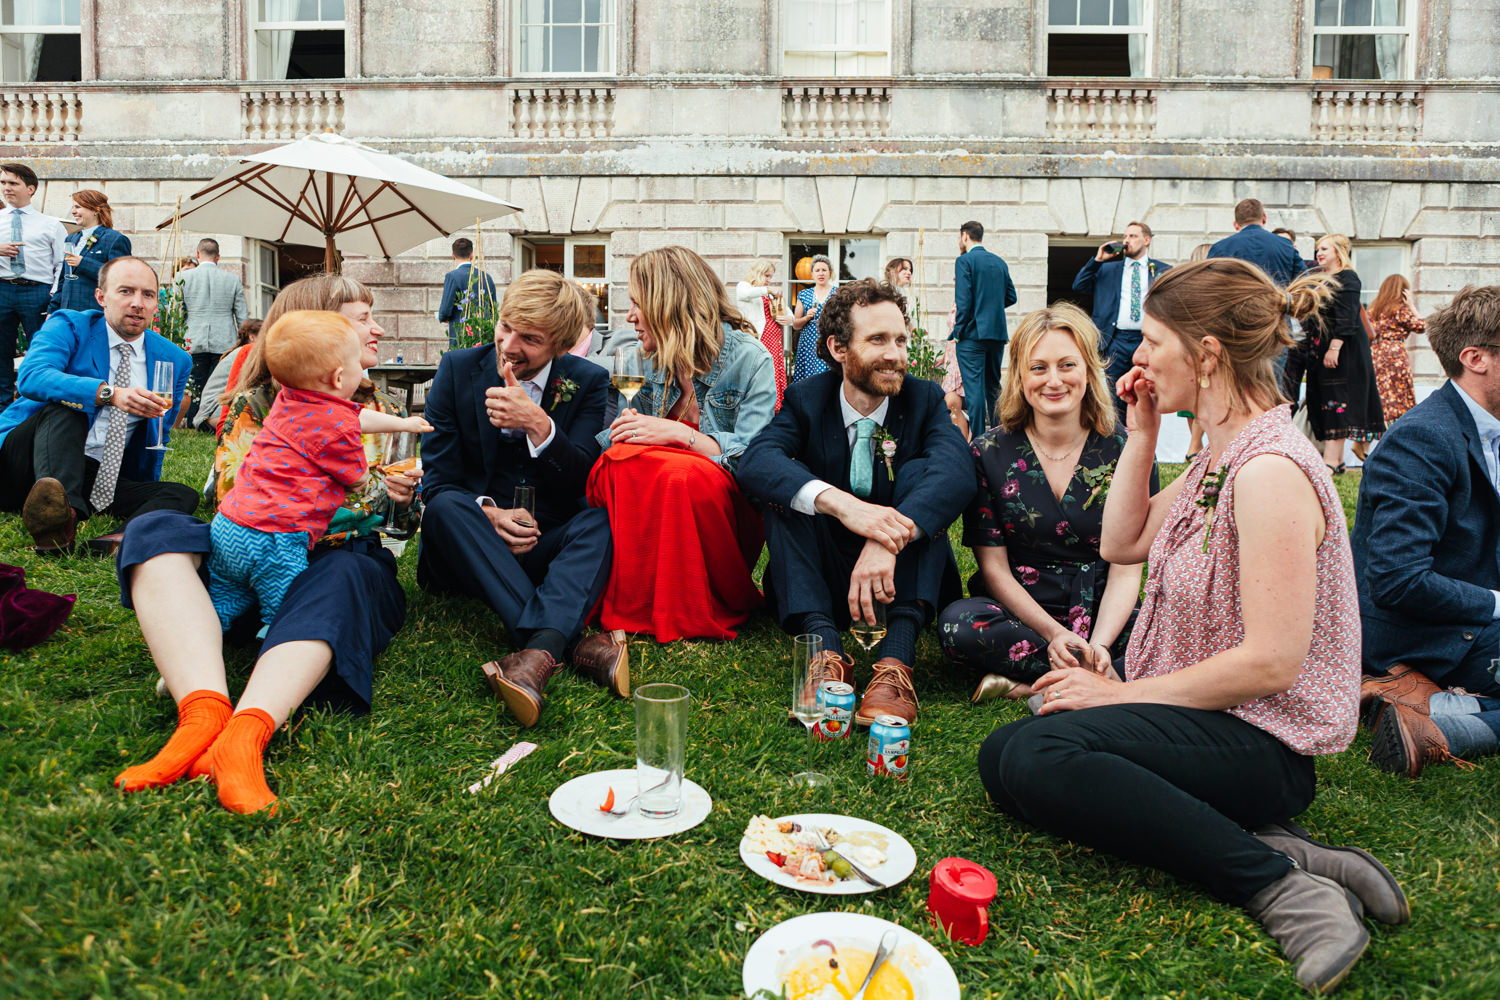 wedding guests, sharpham house, sharpham gardens, sharpham gardens wedding photography, colourful clothing, colour, food, drinks, grass, guests sitting on grass, outdoor wedding reception